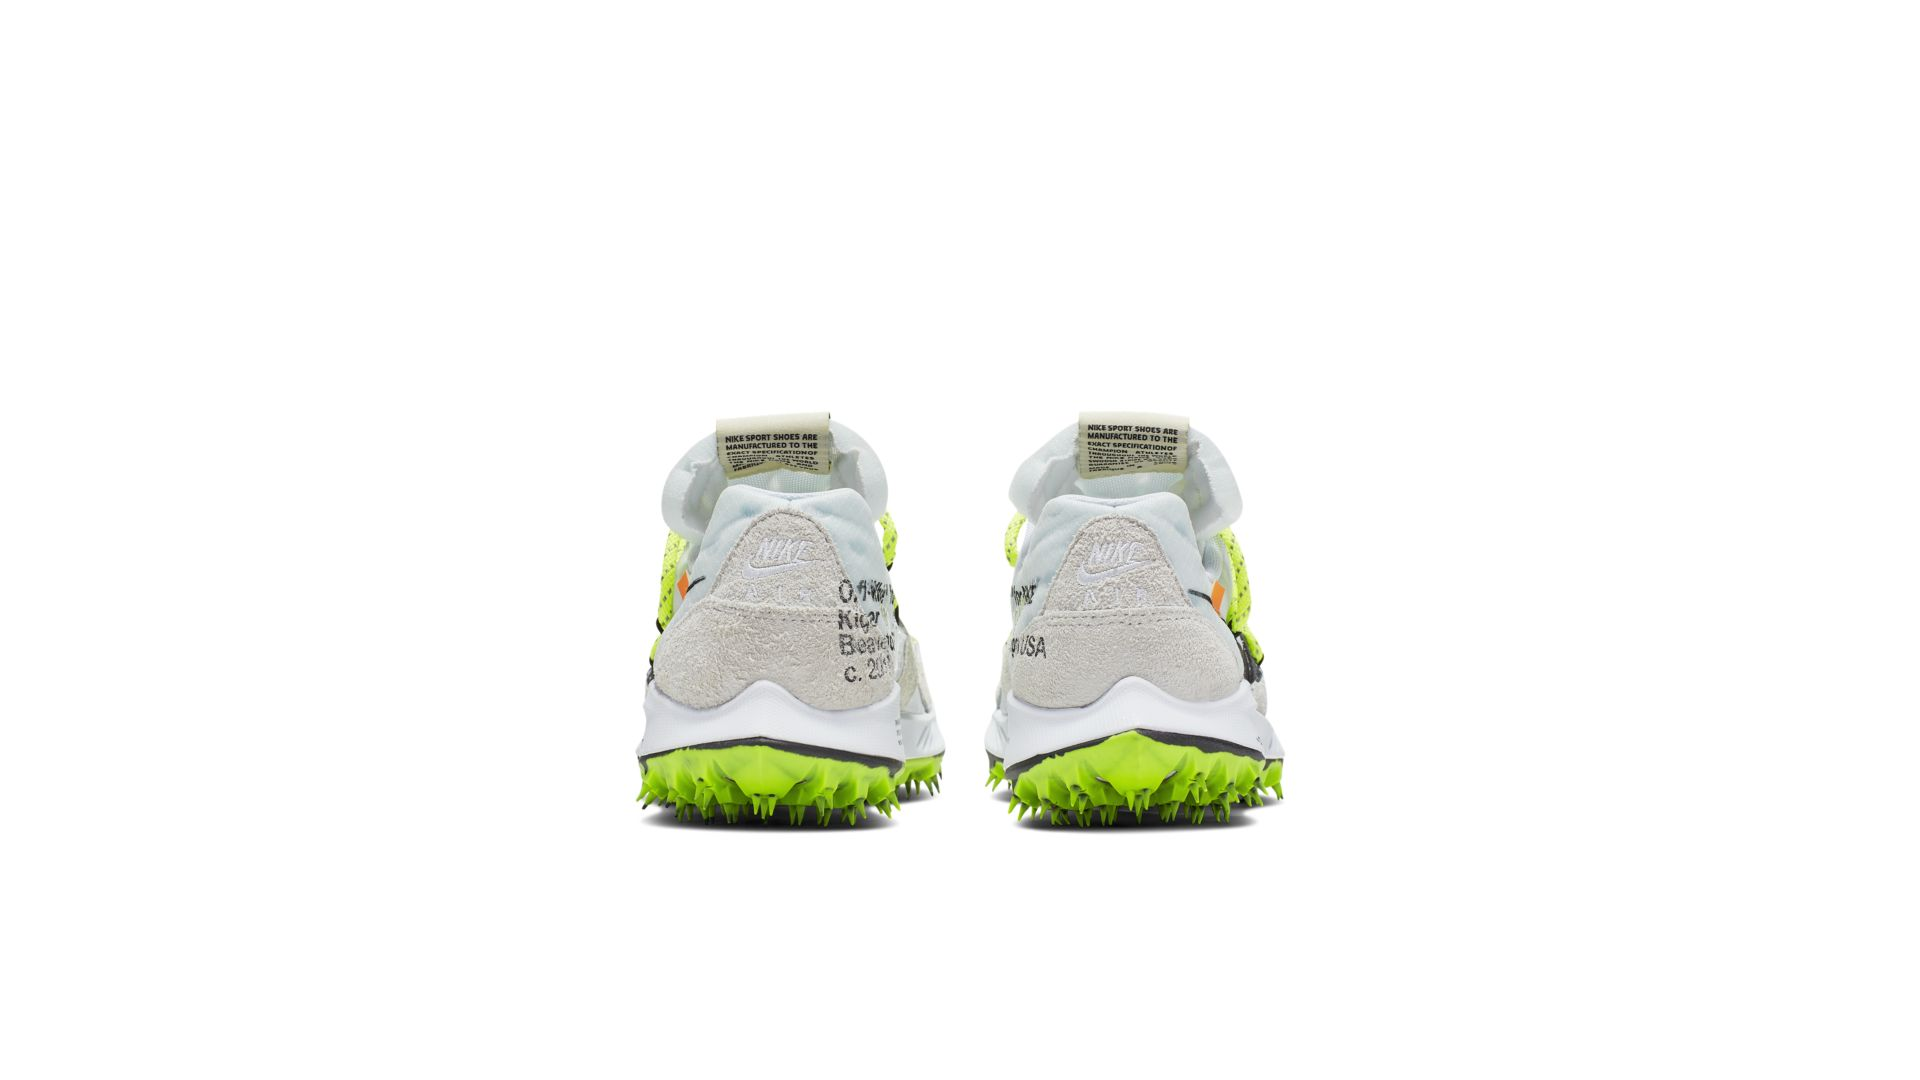 Nike Zoom Terra Kiger 5 Off-White White (W) (CD8179-100)